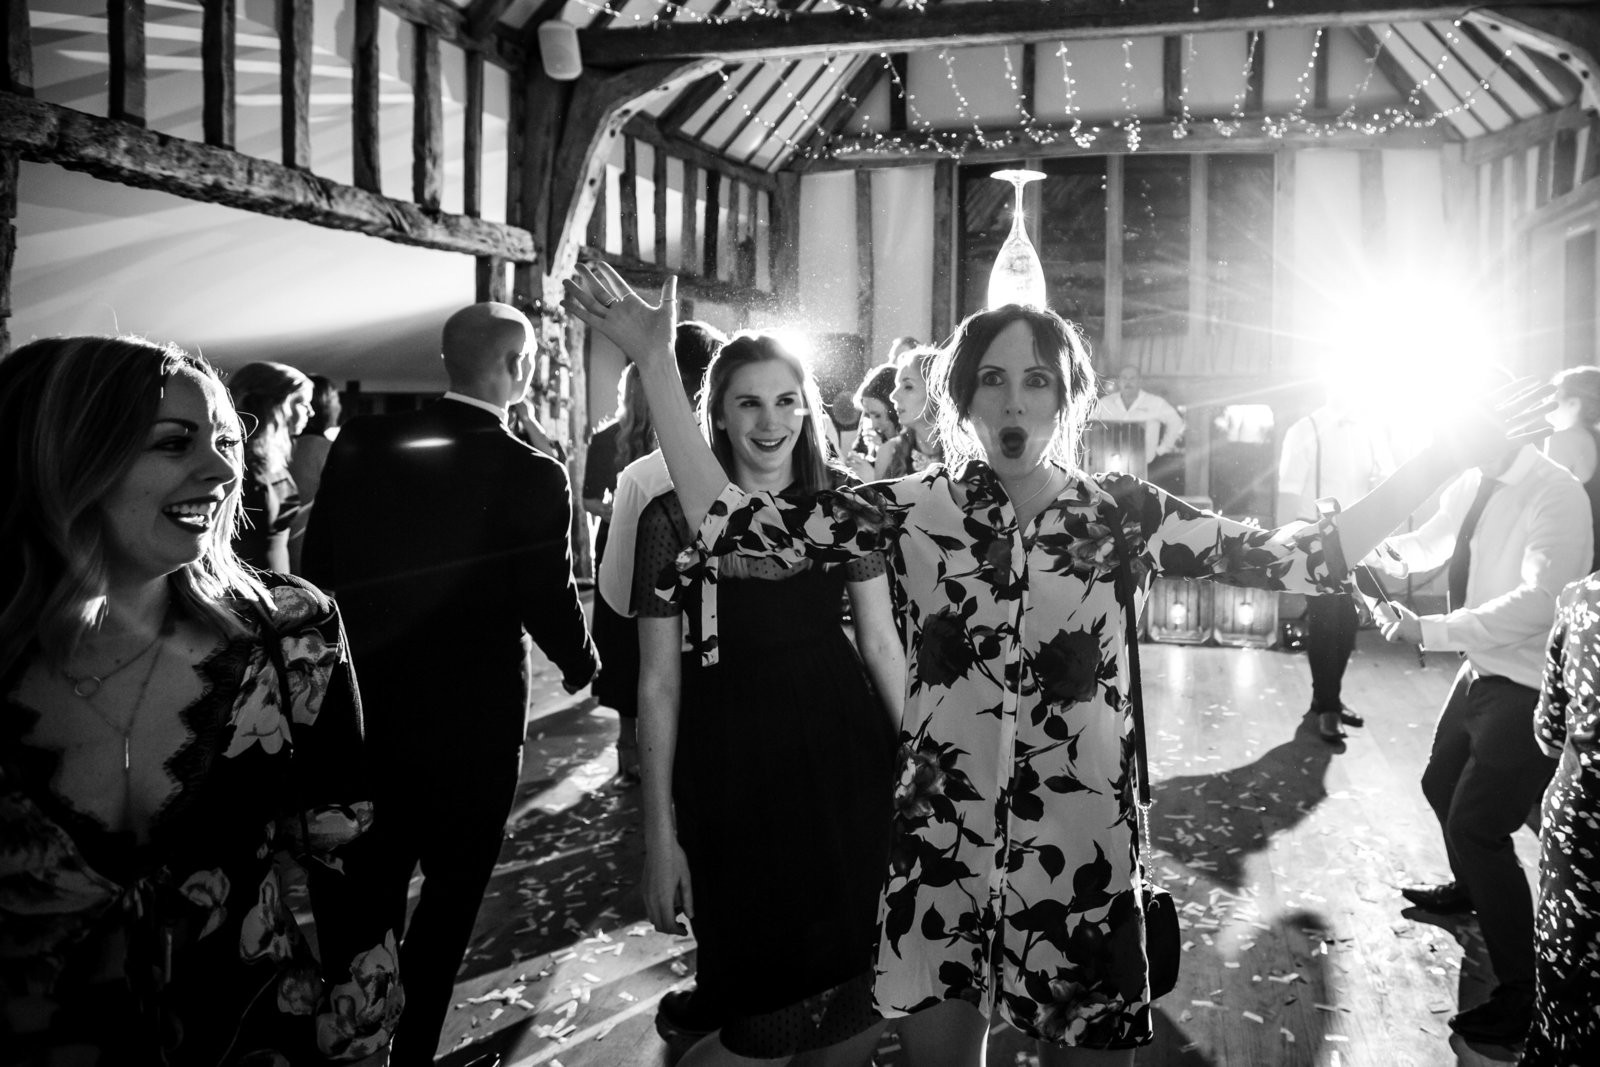 A happy lady guest balances a wine glass on her head during the dancing at a Norfolk barn wedding